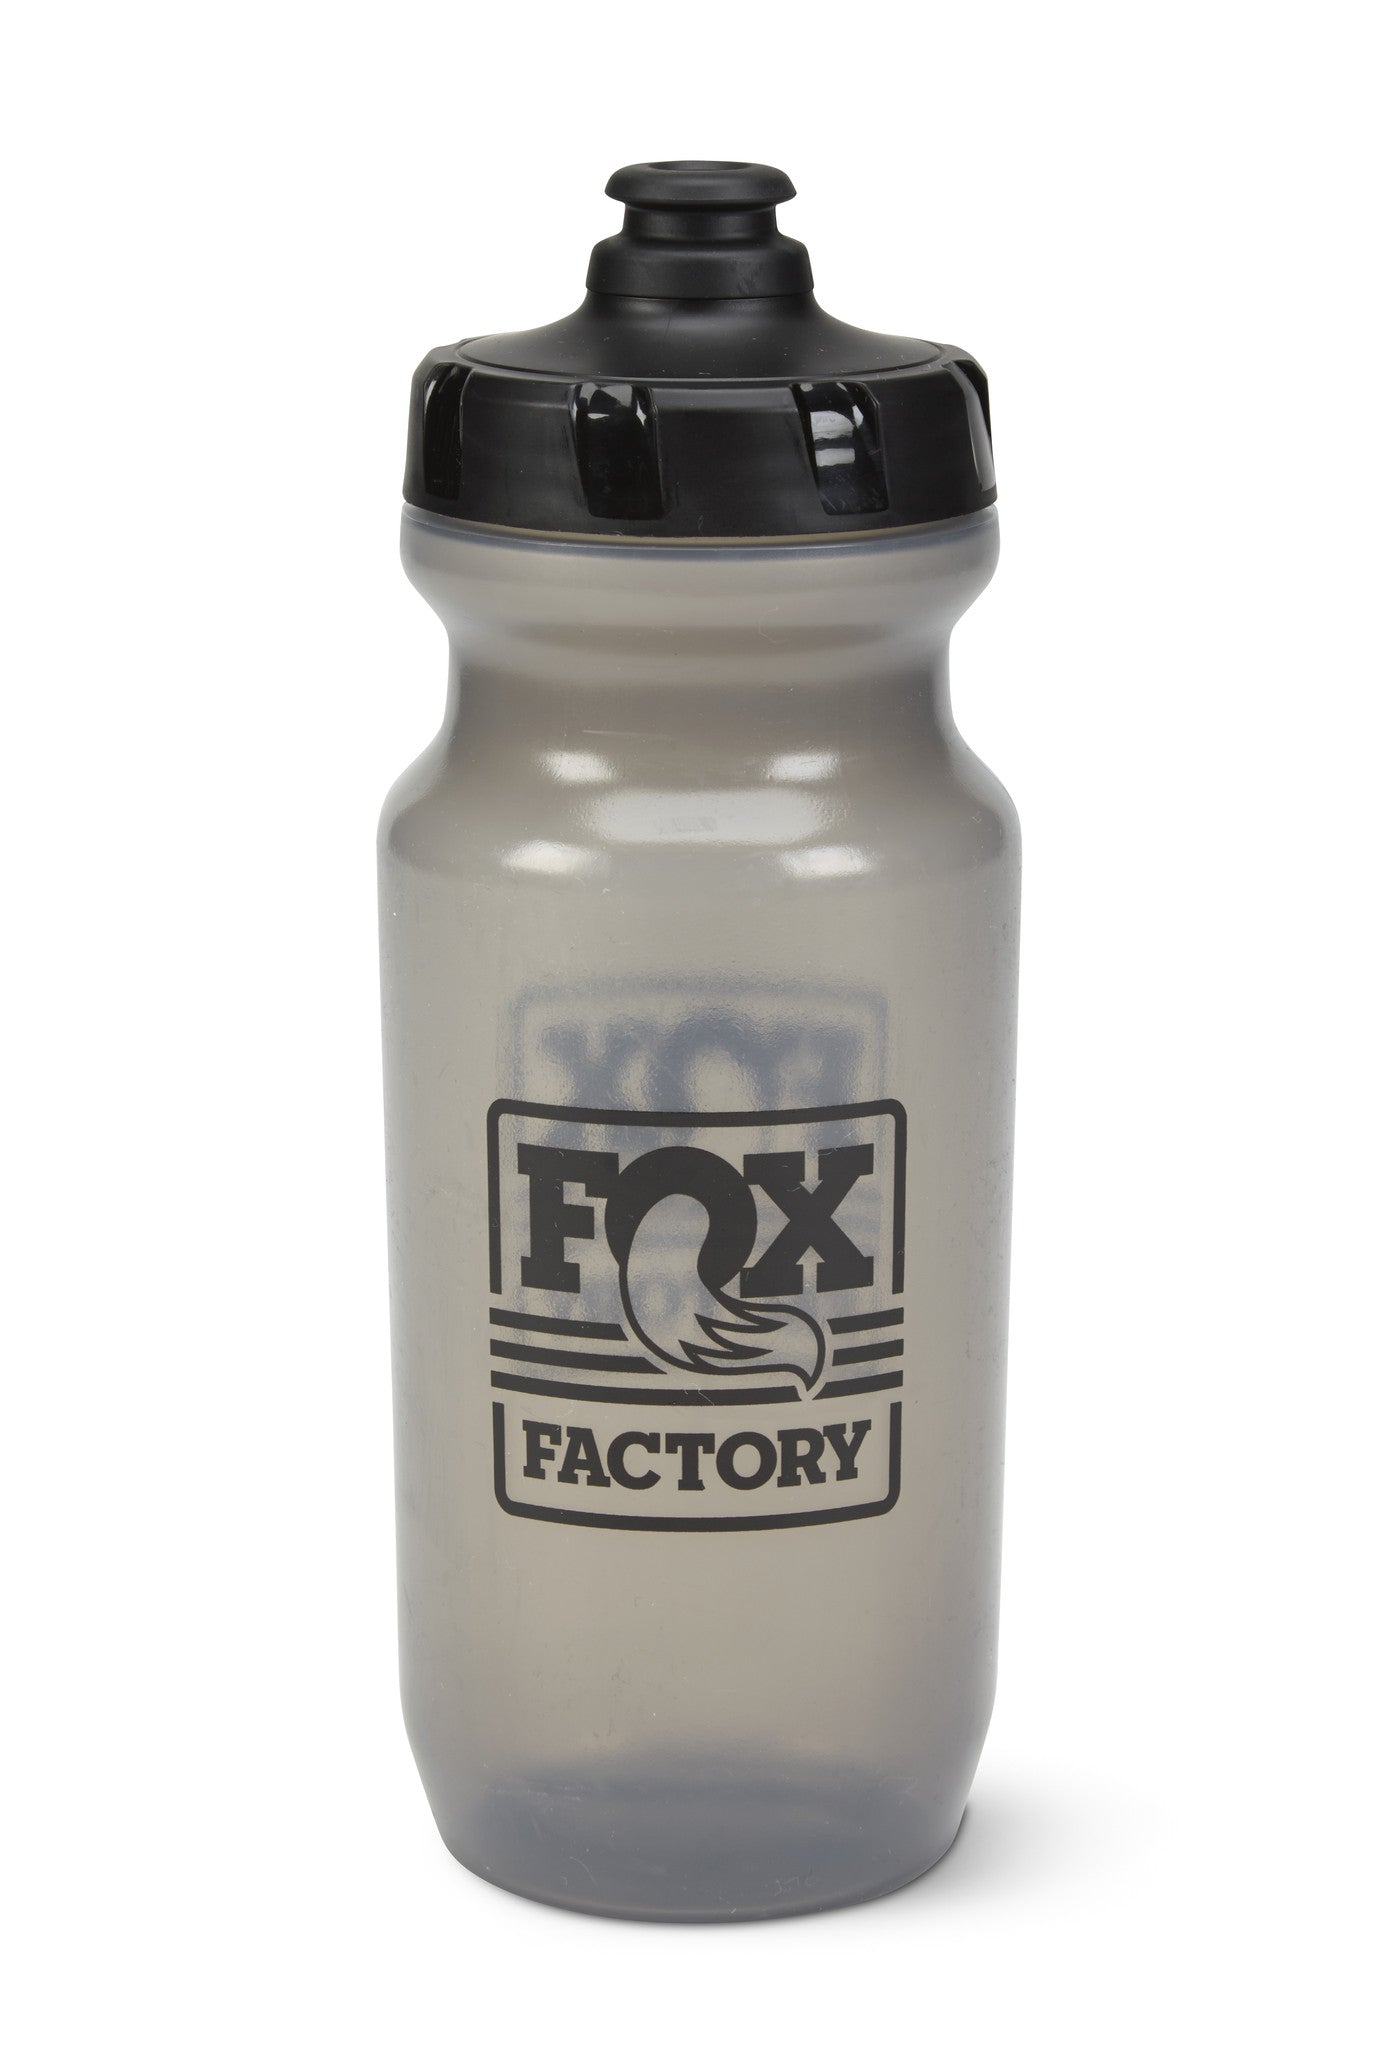 FOX Water bottle, 21oz, Smoke/Black